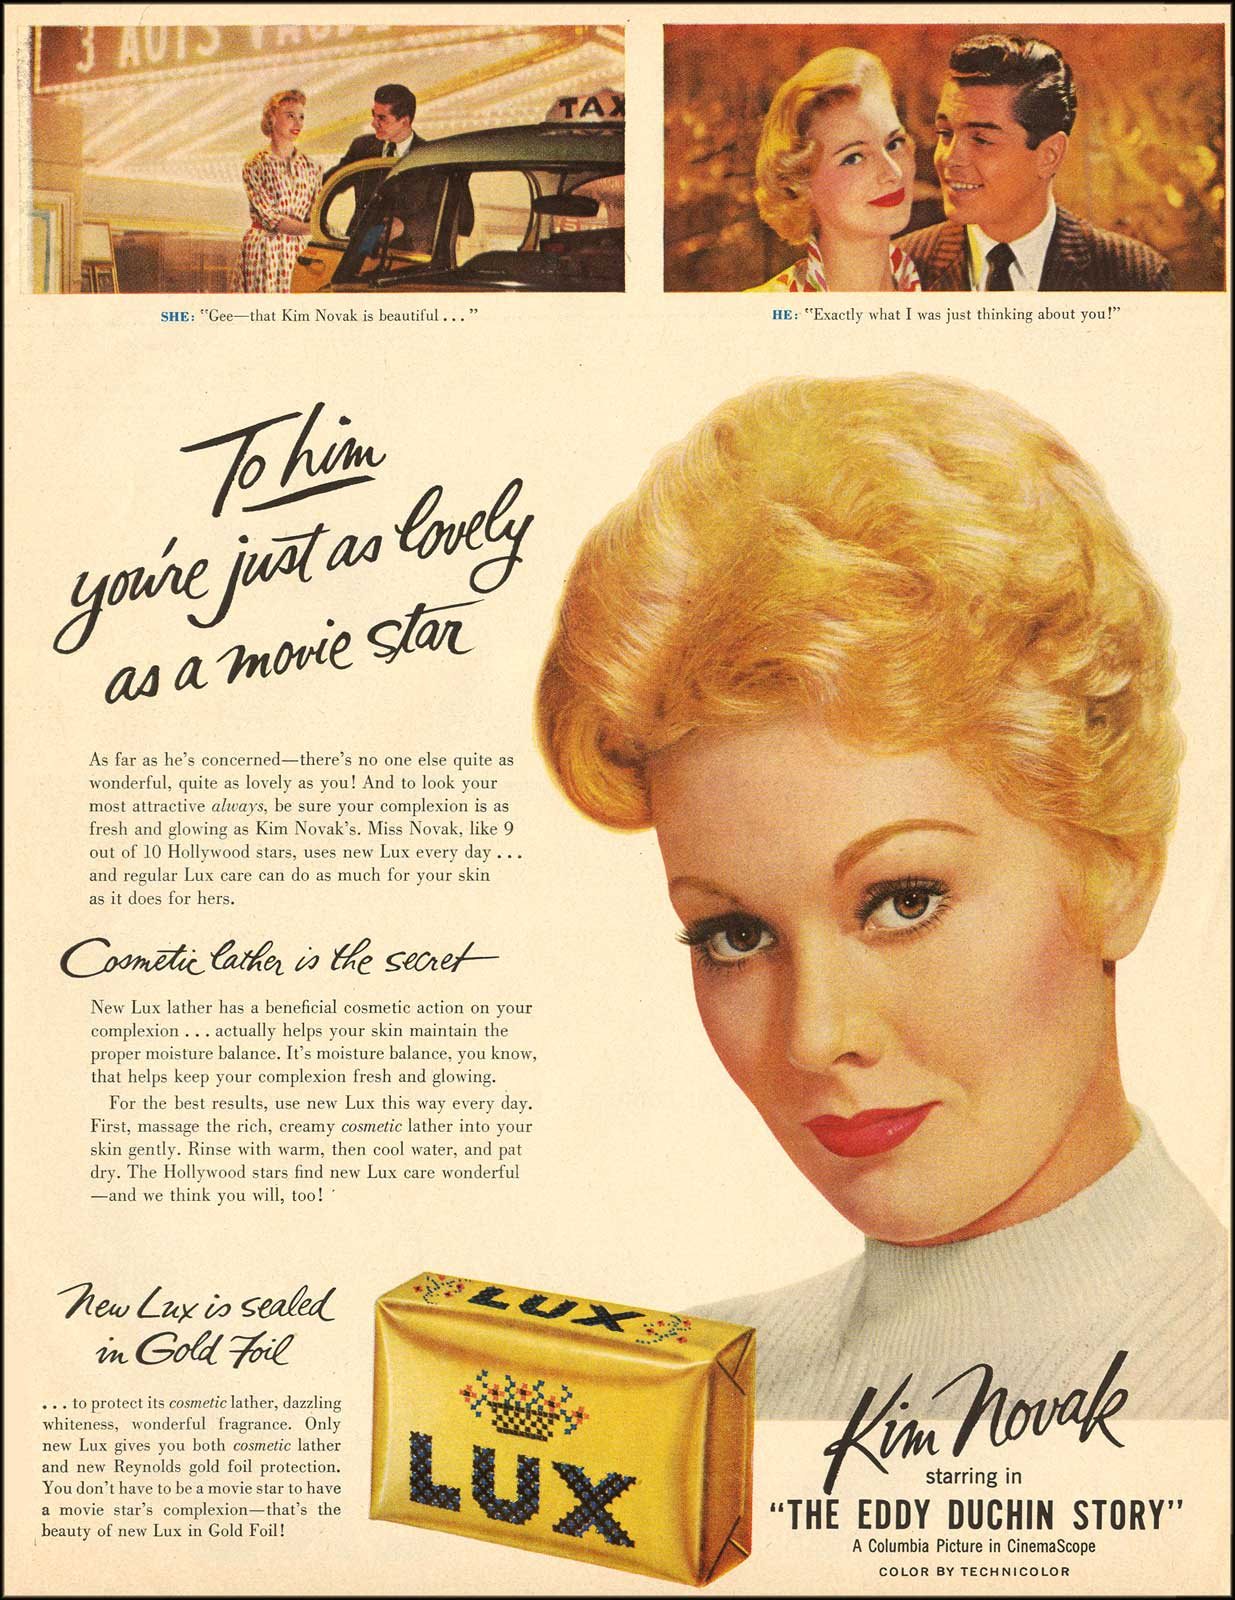 branding and advertising of soaps and